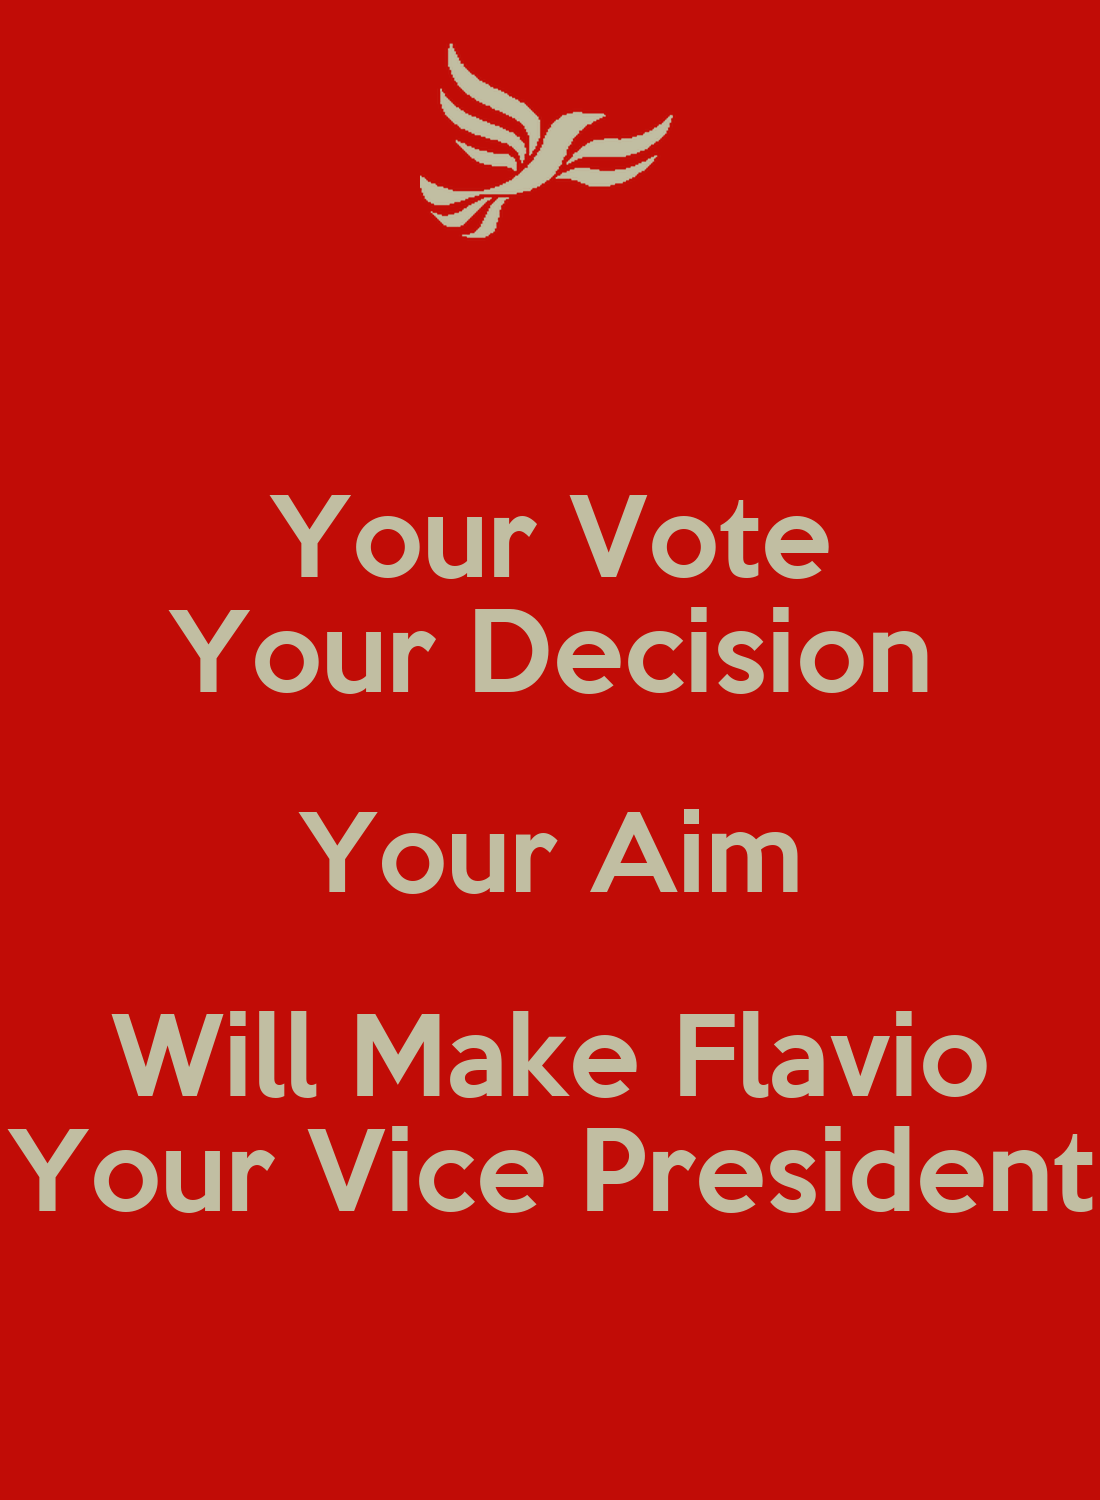 Your Vote Your Decision Your Aim Will Make Flavio Your ...